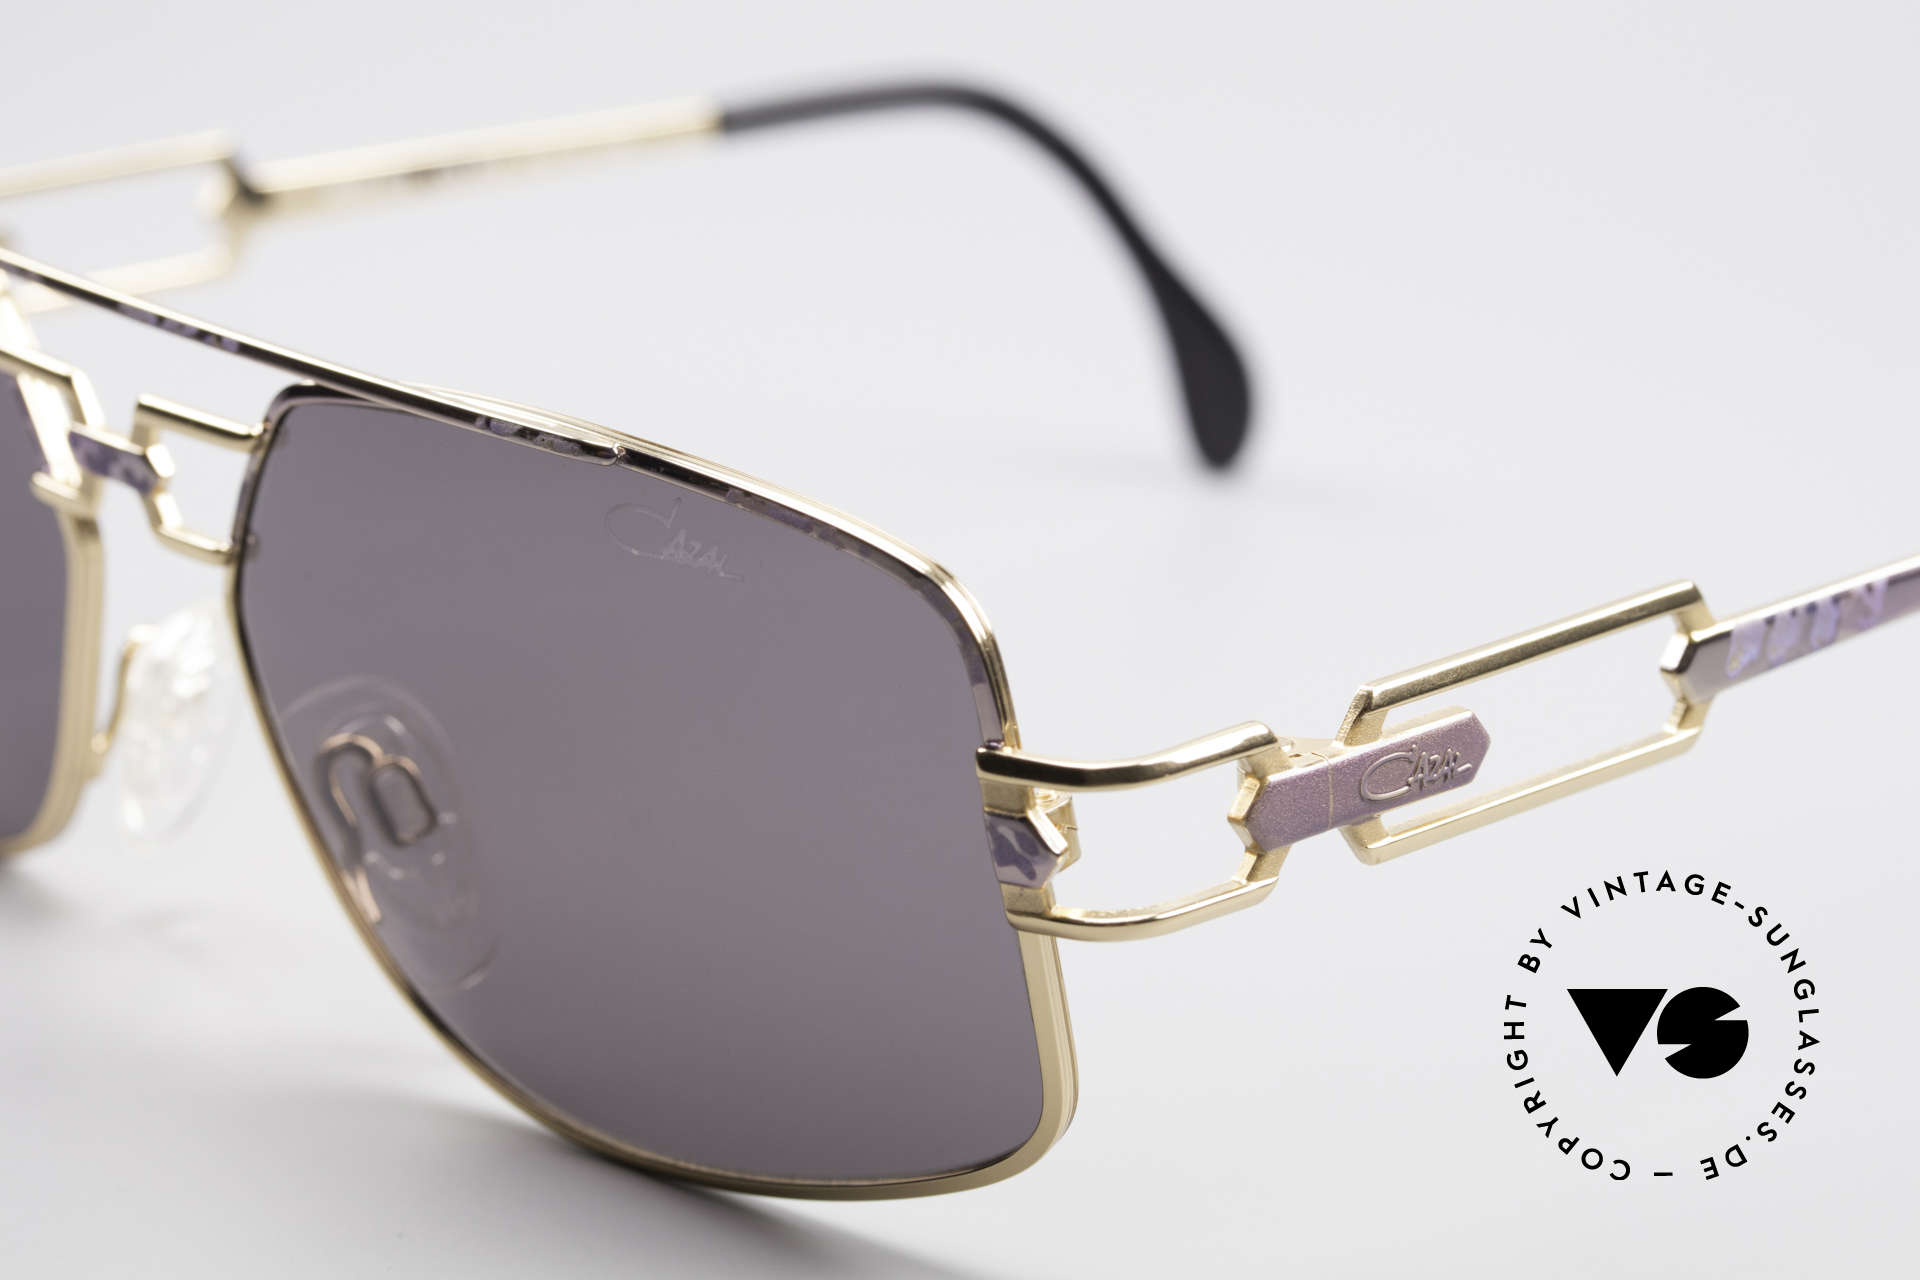 Cazal 972 True Vintage Shades No Retro, unworn, new old stock (like all our vintage Cazal shades), Made for Men and Women